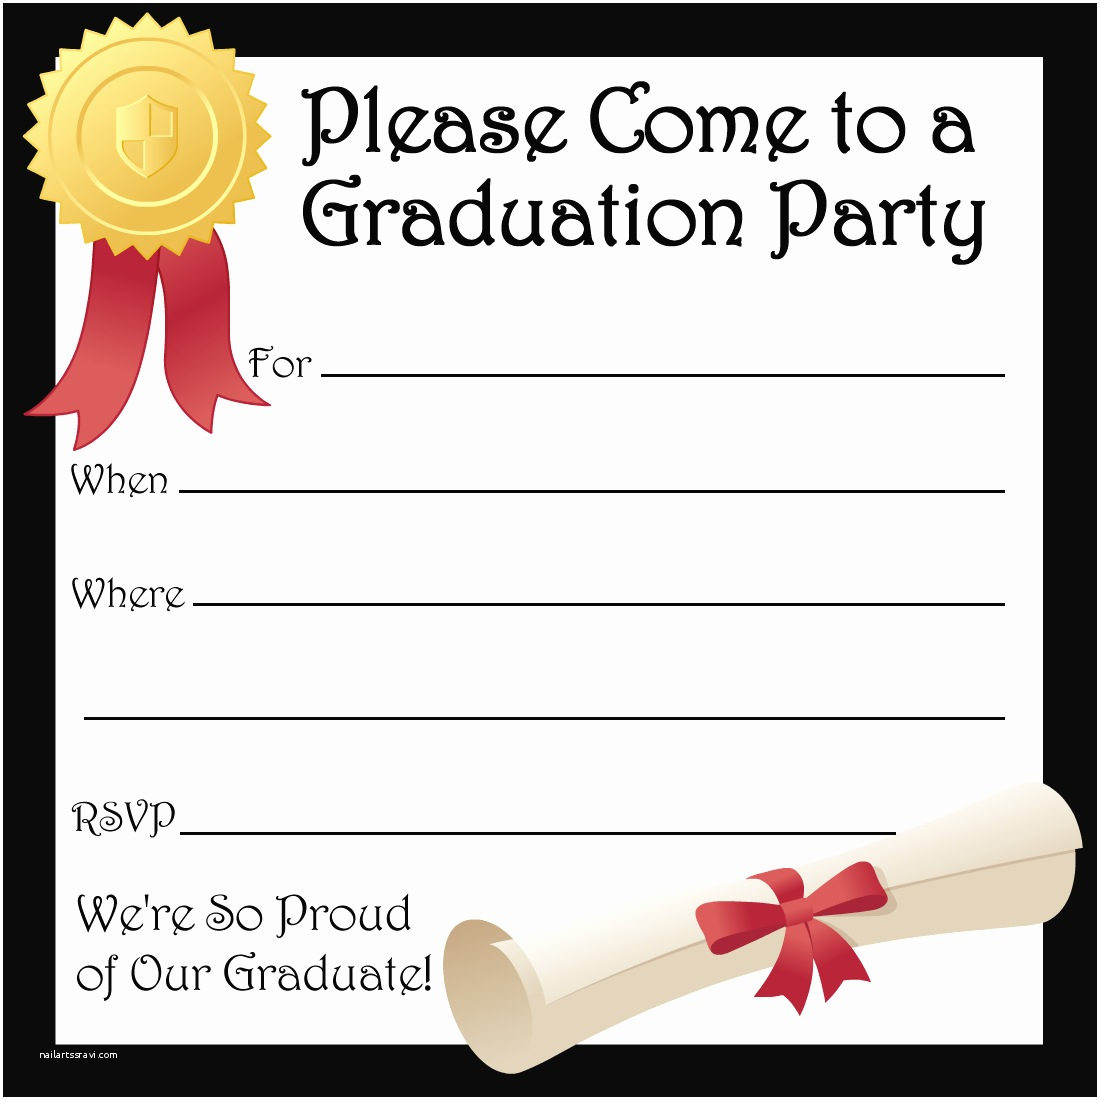 Graduation Party Invitations Ideas Free Printable Graduation Party Invitations